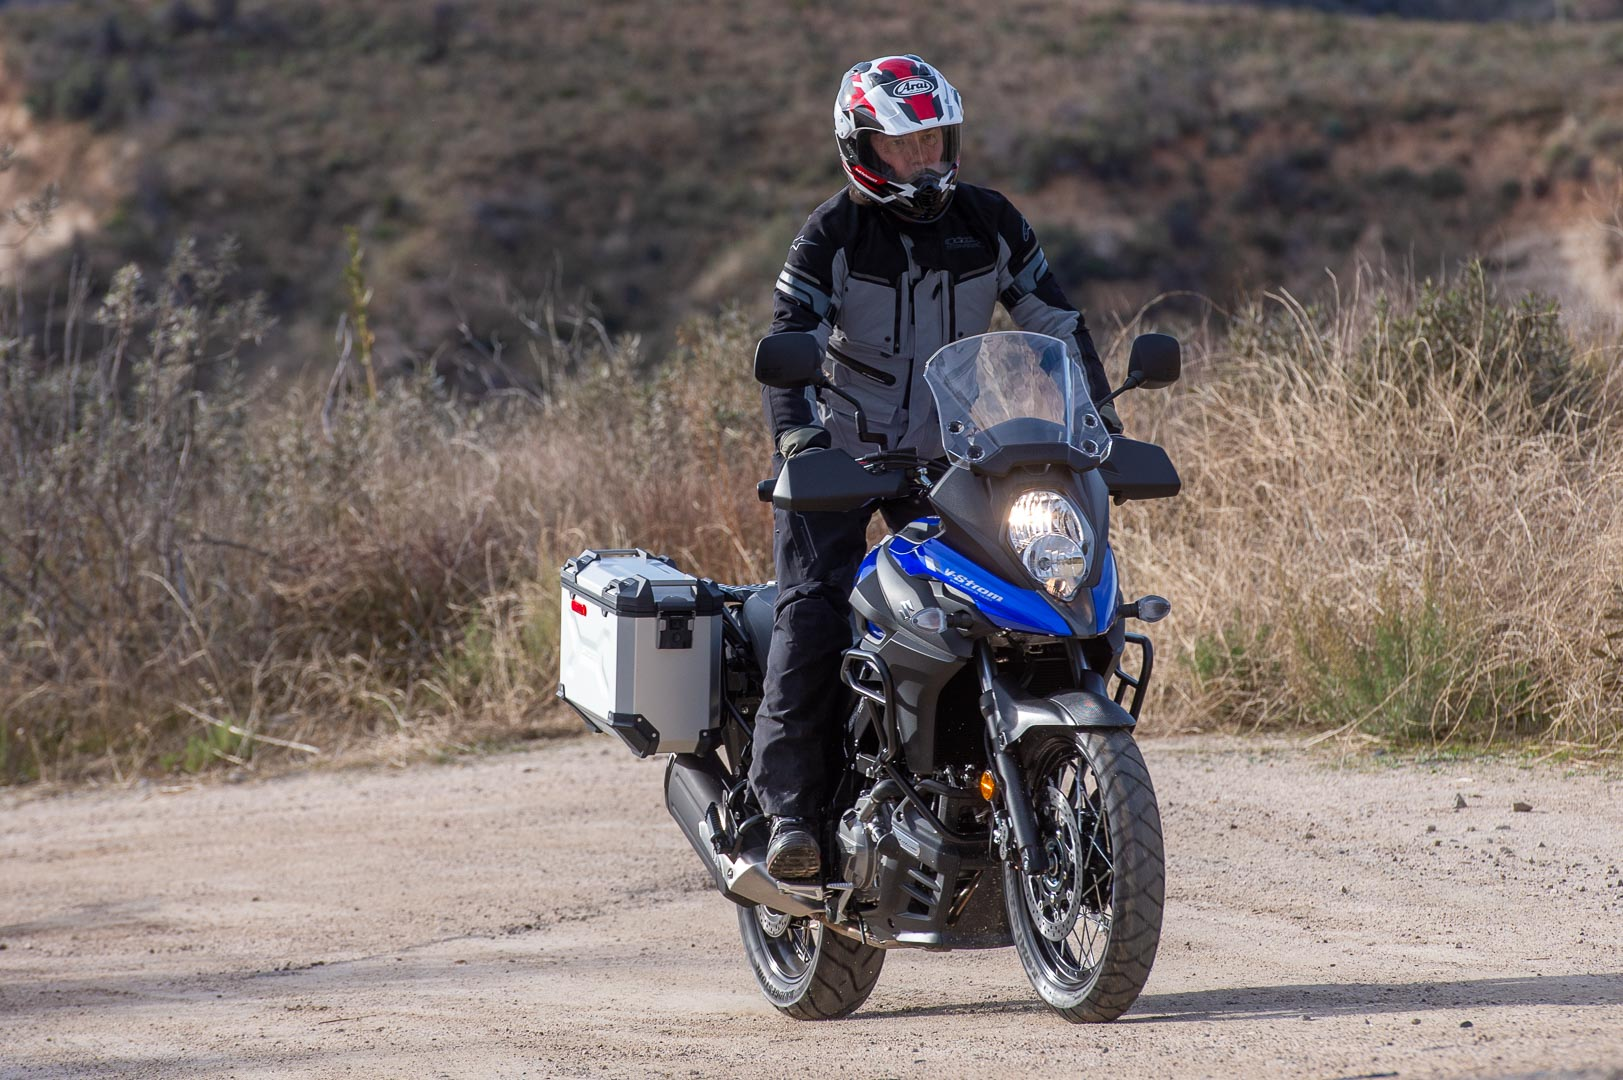 2020 Suzuki V-Strom 650XT Adventure test